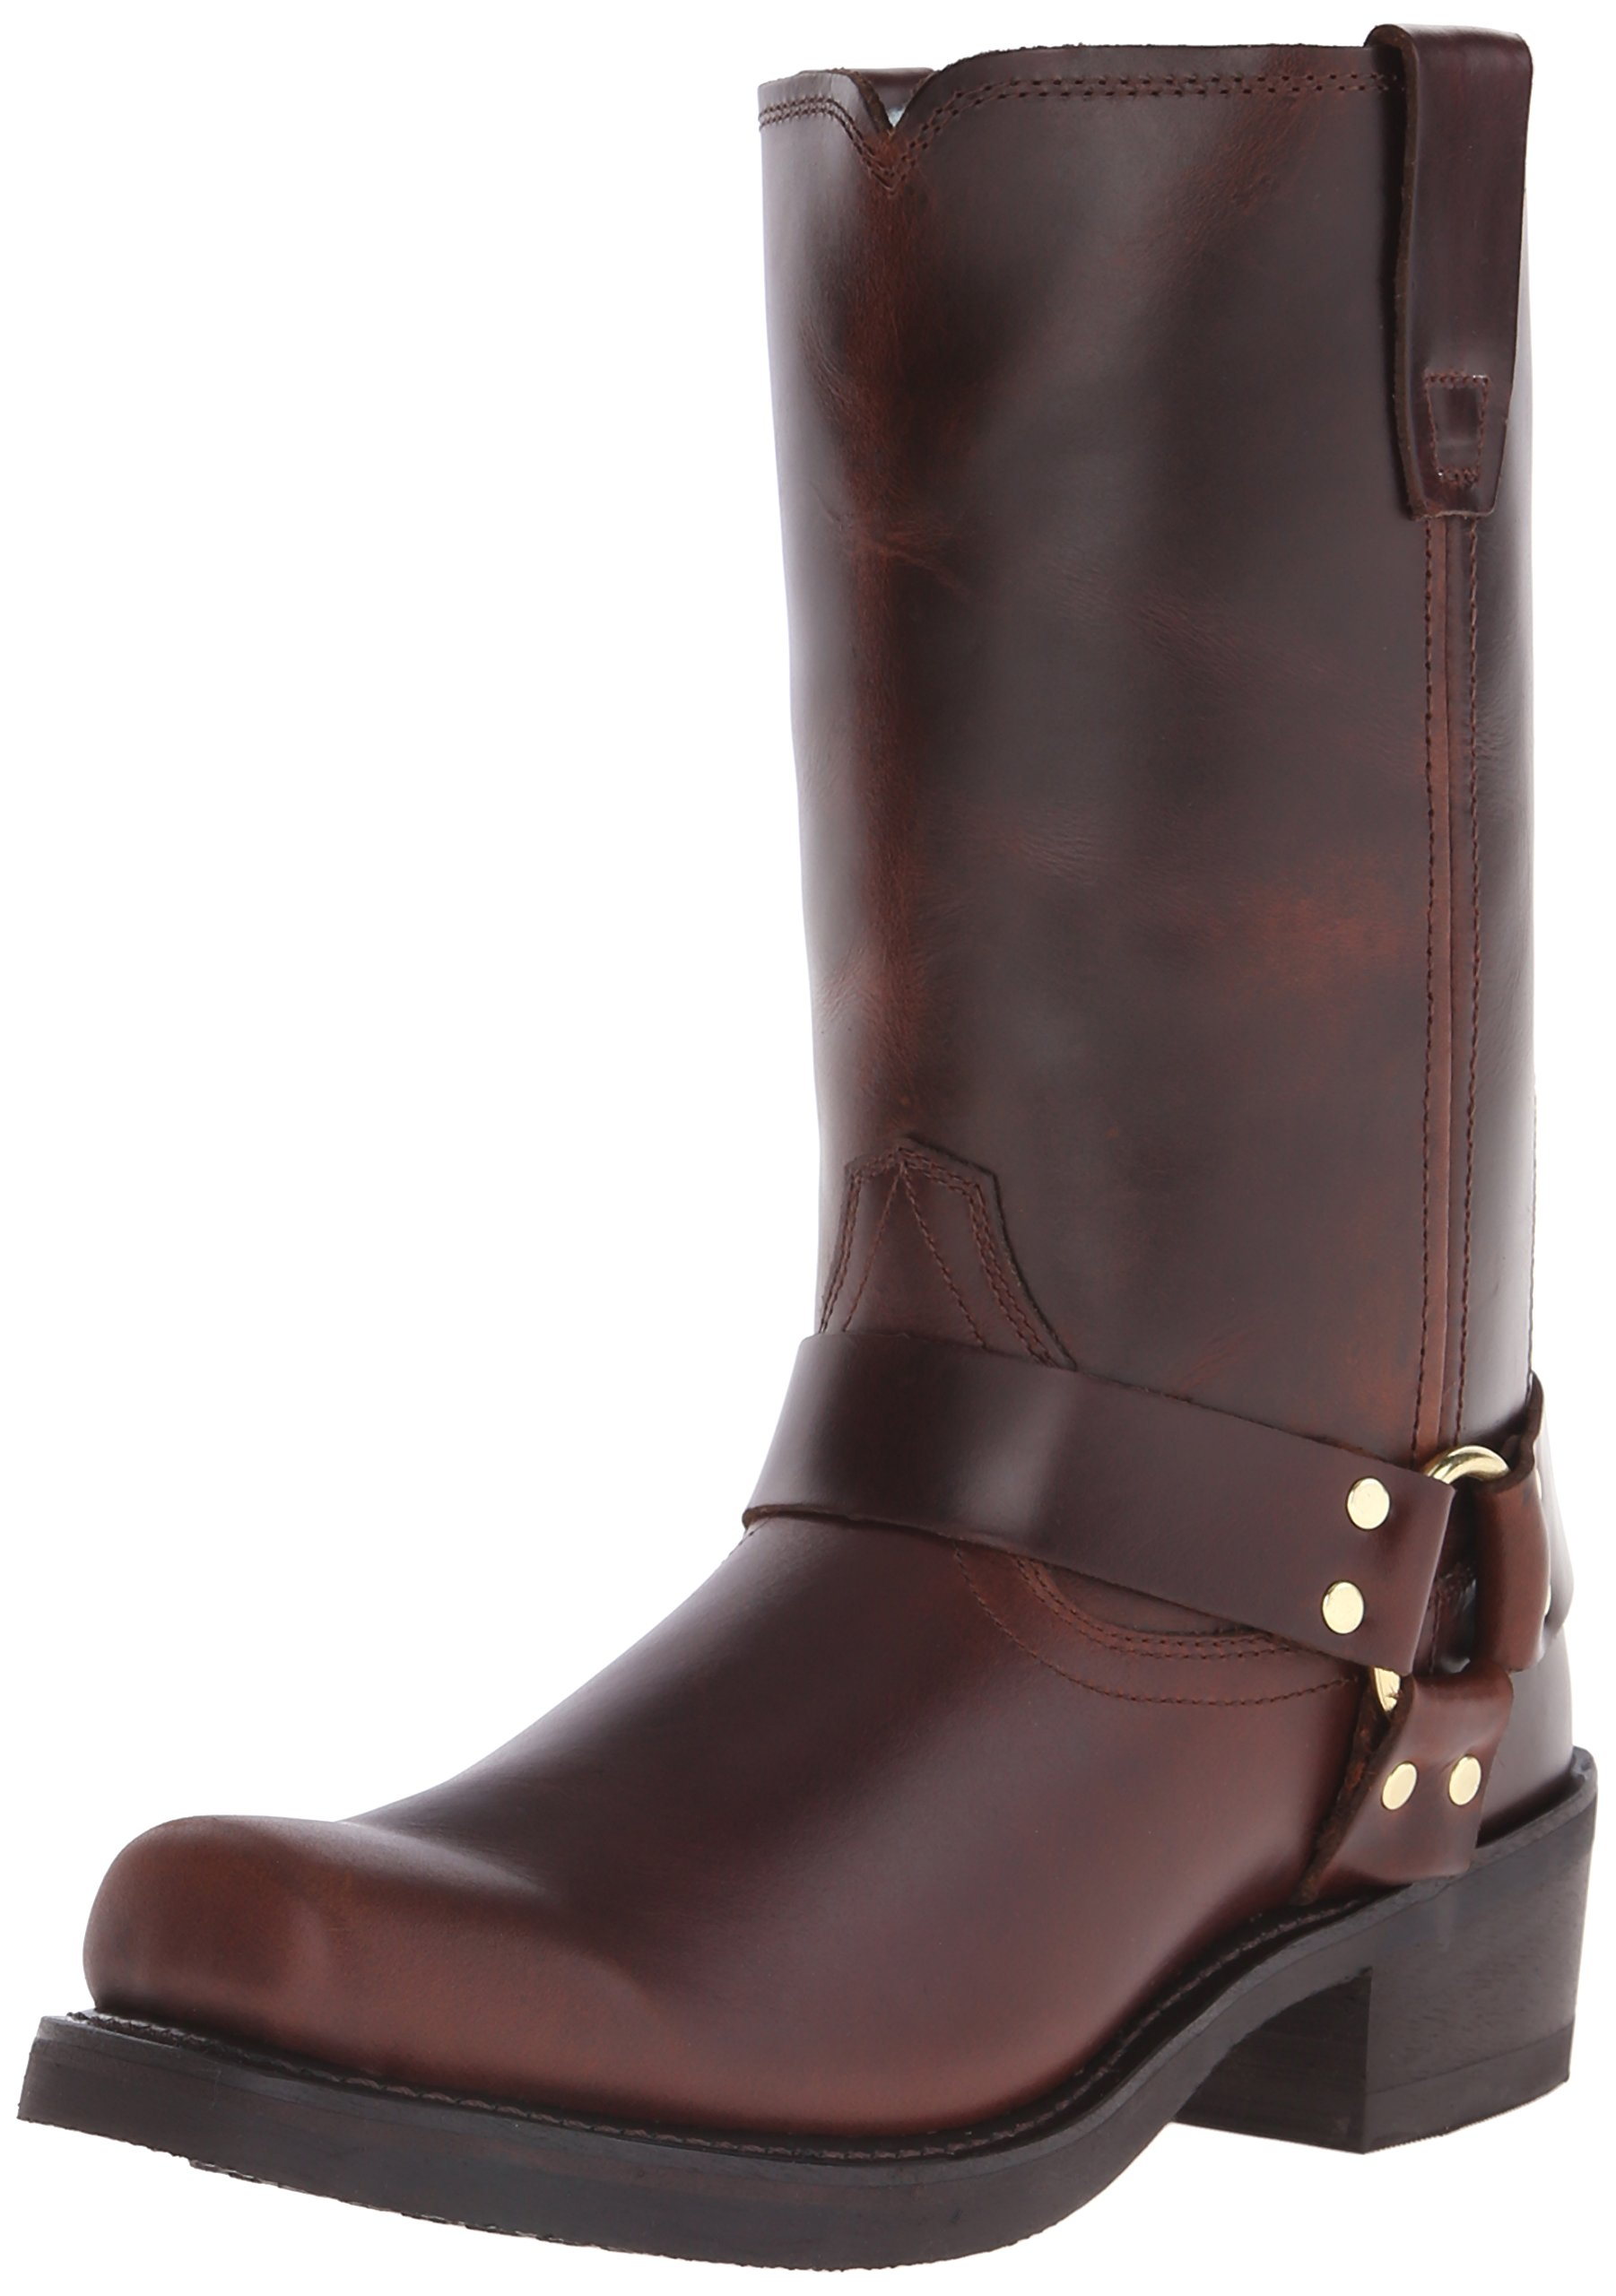 Durango Men's DB514 11'' Harness Boot Rubbed Brown 11 EE - Wide